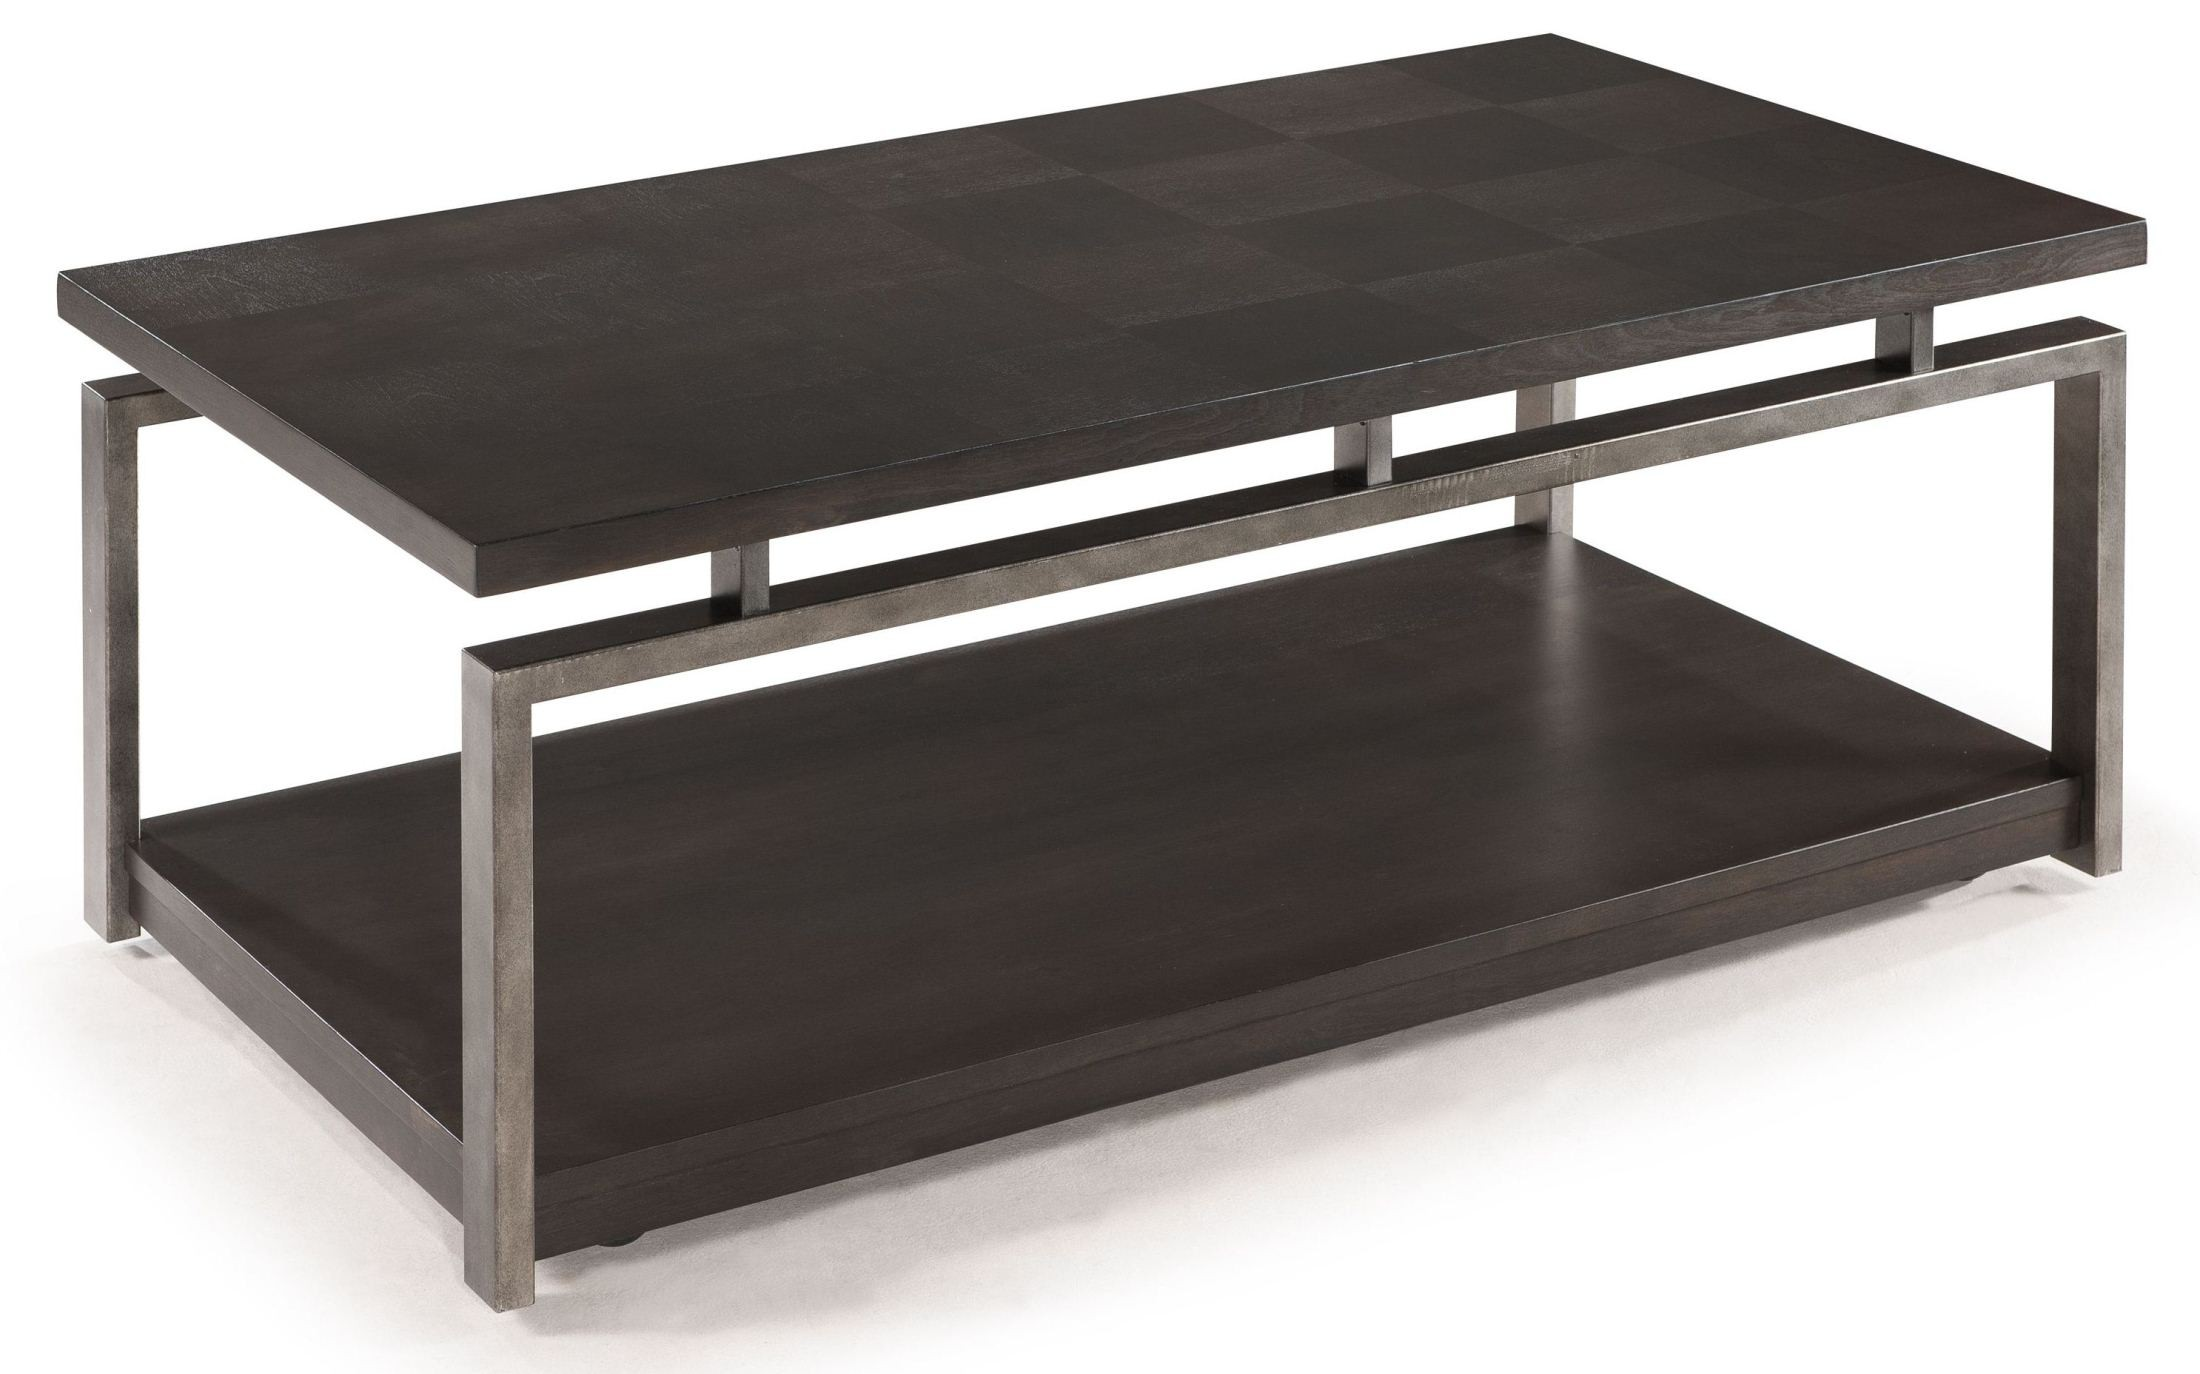 alton rectangular casters cocktail table from magnussen